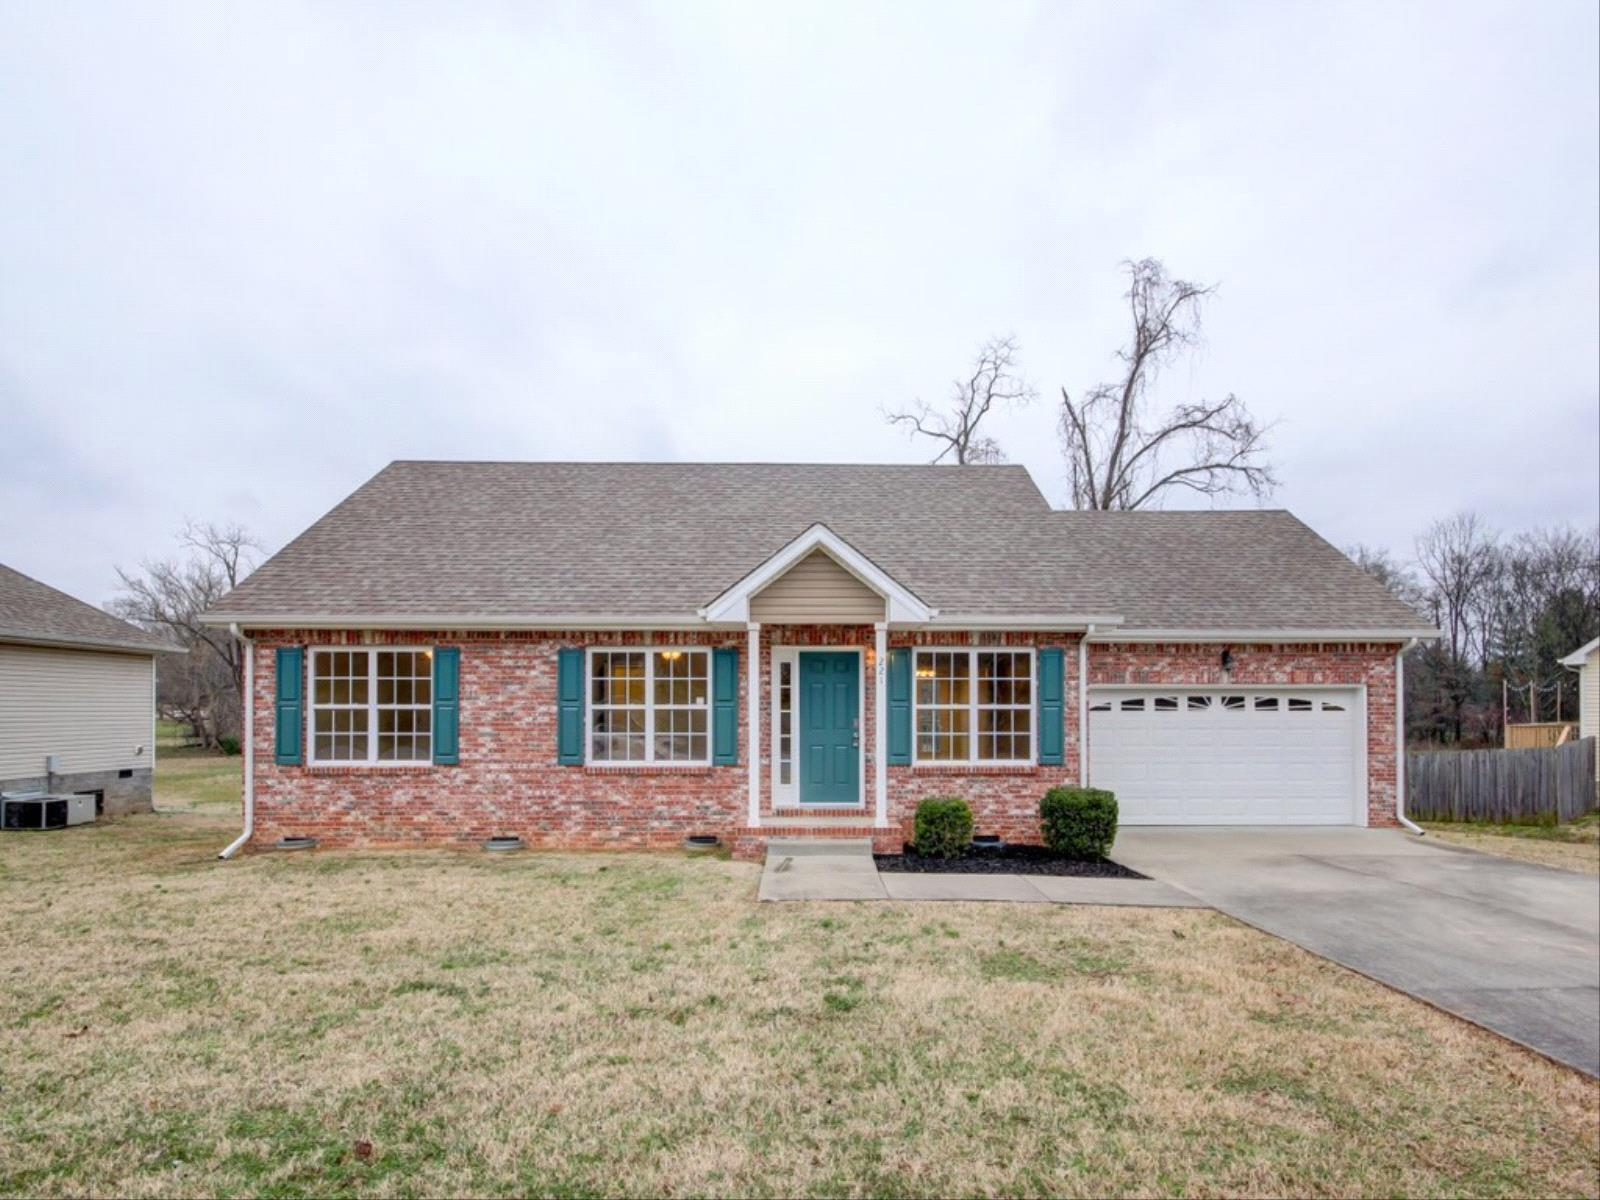 221 Raintree Dr, Clarksville in Montgomery County County, TN 37042 Home for Sale